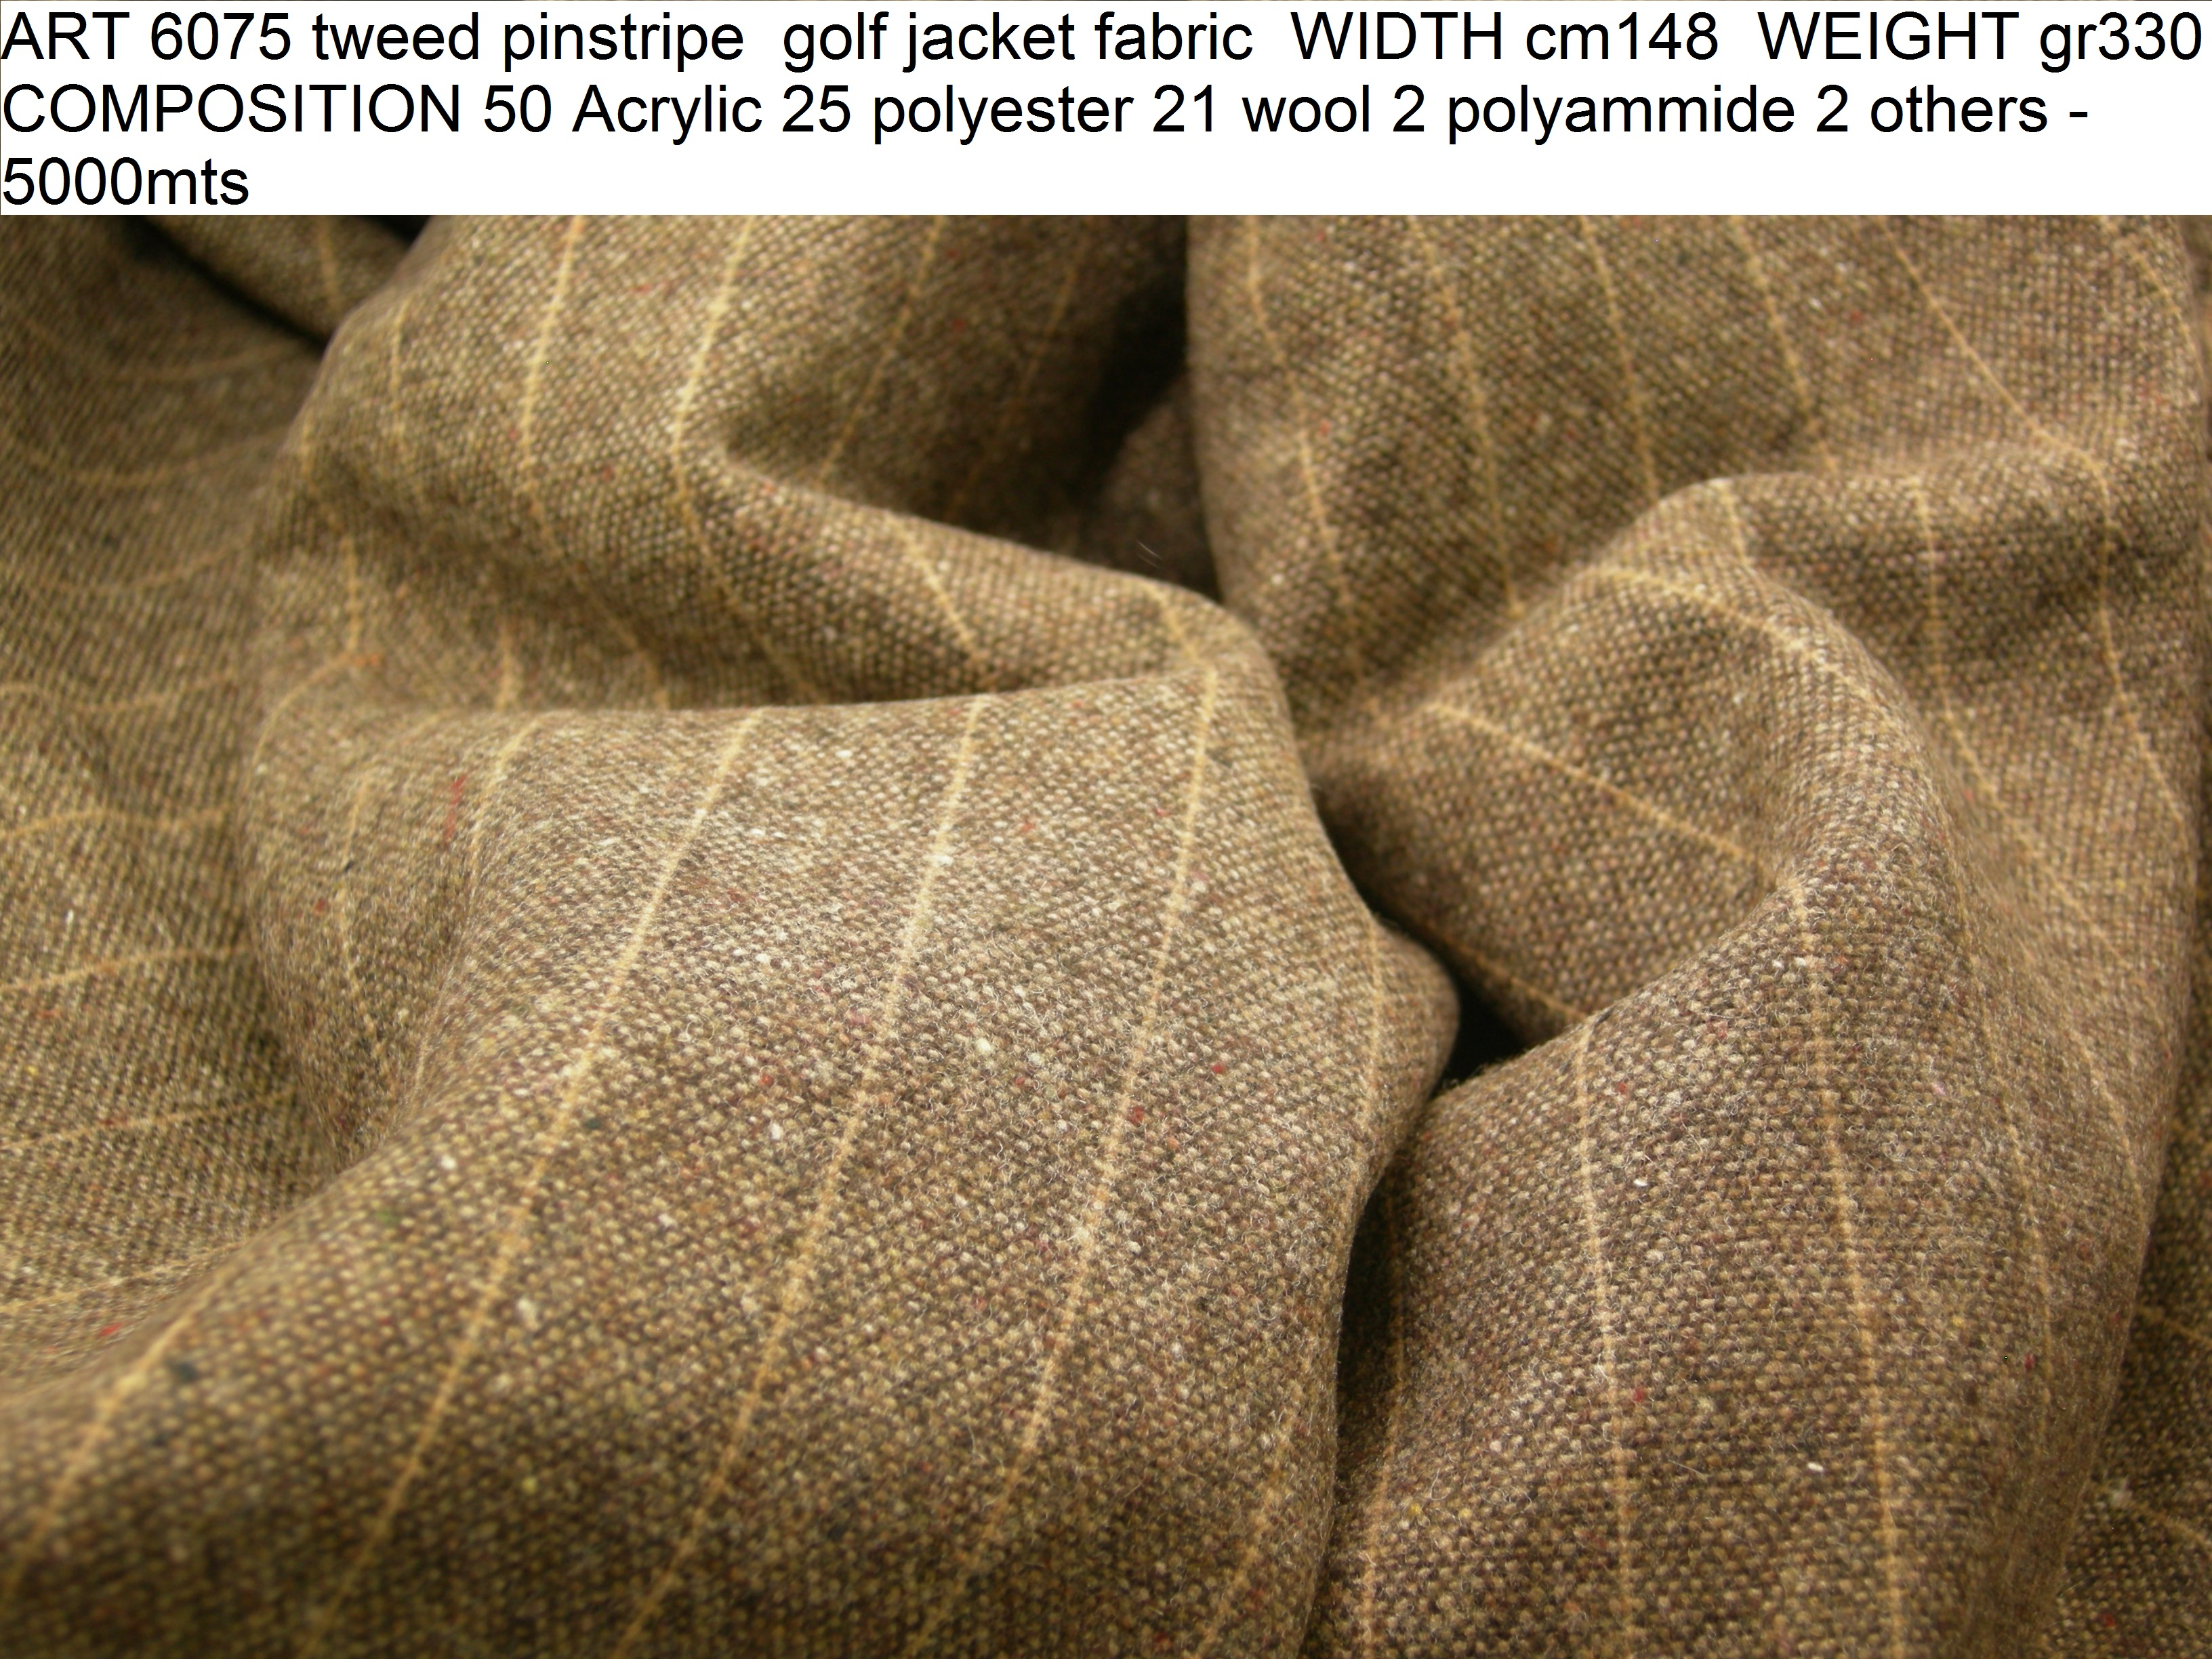 ART 6075 tweed pinstripe golf jacket fabric WIDTH cm148 WEIGHT gr330 COMPOSITION 50 Acrylic 25 polyester 21 wool 2 polyammide 2 others - 5000mts